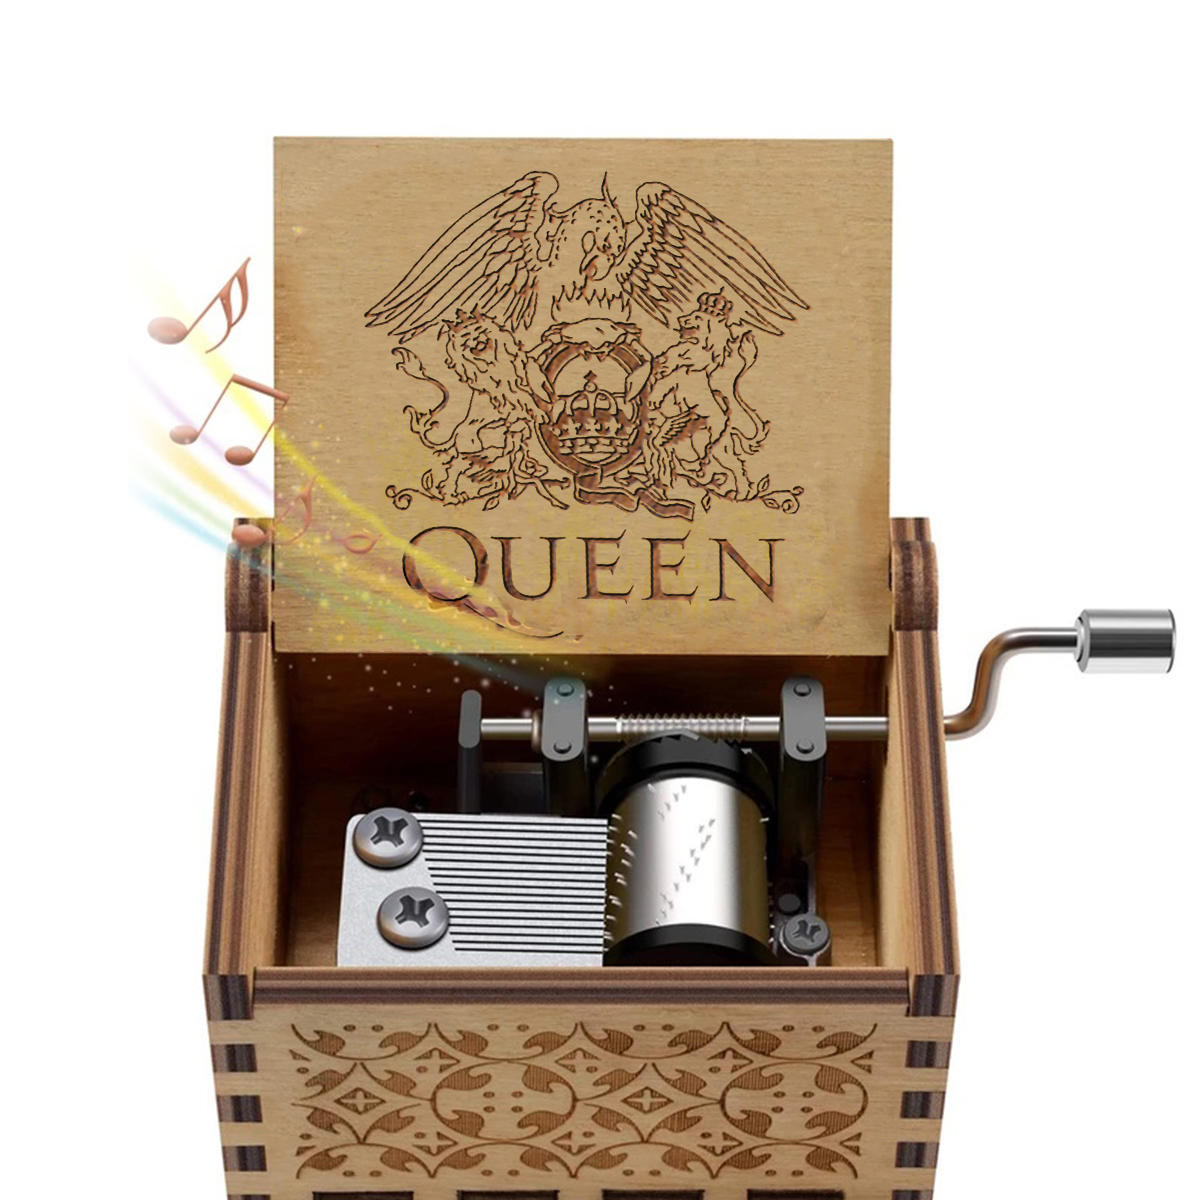 Hand Crank Wooden Engraved Queen Music Box Kids Christmas Ornament Gift 64*52mm